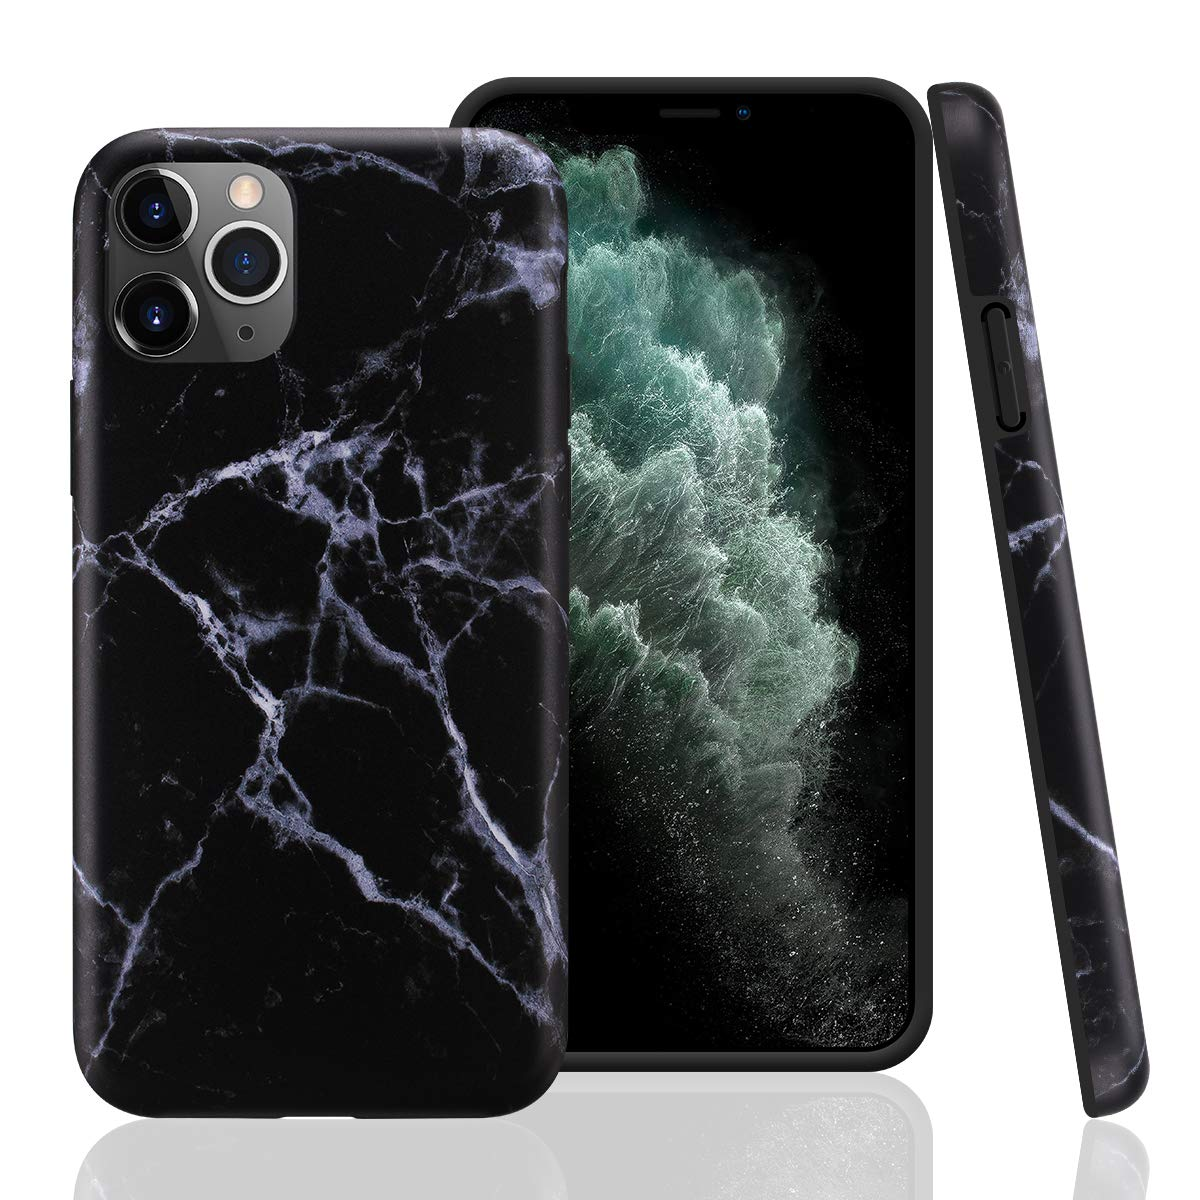 GOLINK Case for iPhone 11 Pro,Marble Series Slim-Fit Ultra-Thin Anti-Scratch Shock Proof Dust Proof Anti-Finger Print TPU Gel Case for iPhone XI Pro 5.8 inch(2019 Release)-Black Marble